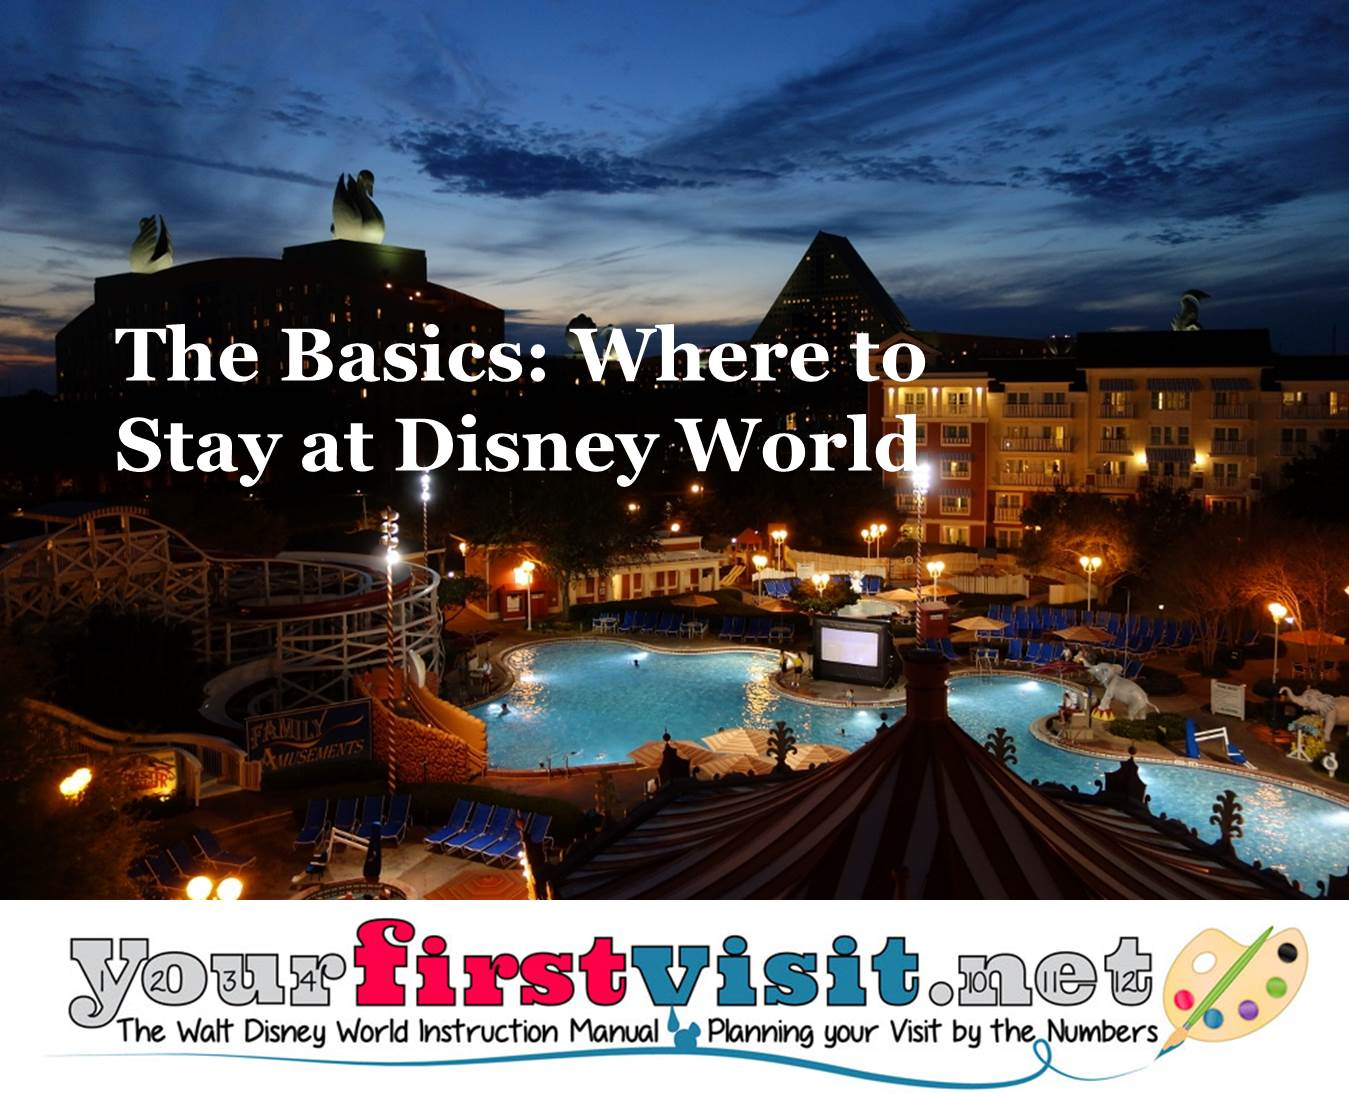 The Basics - Where to Stay at Disney World from yourfirstvisit.net